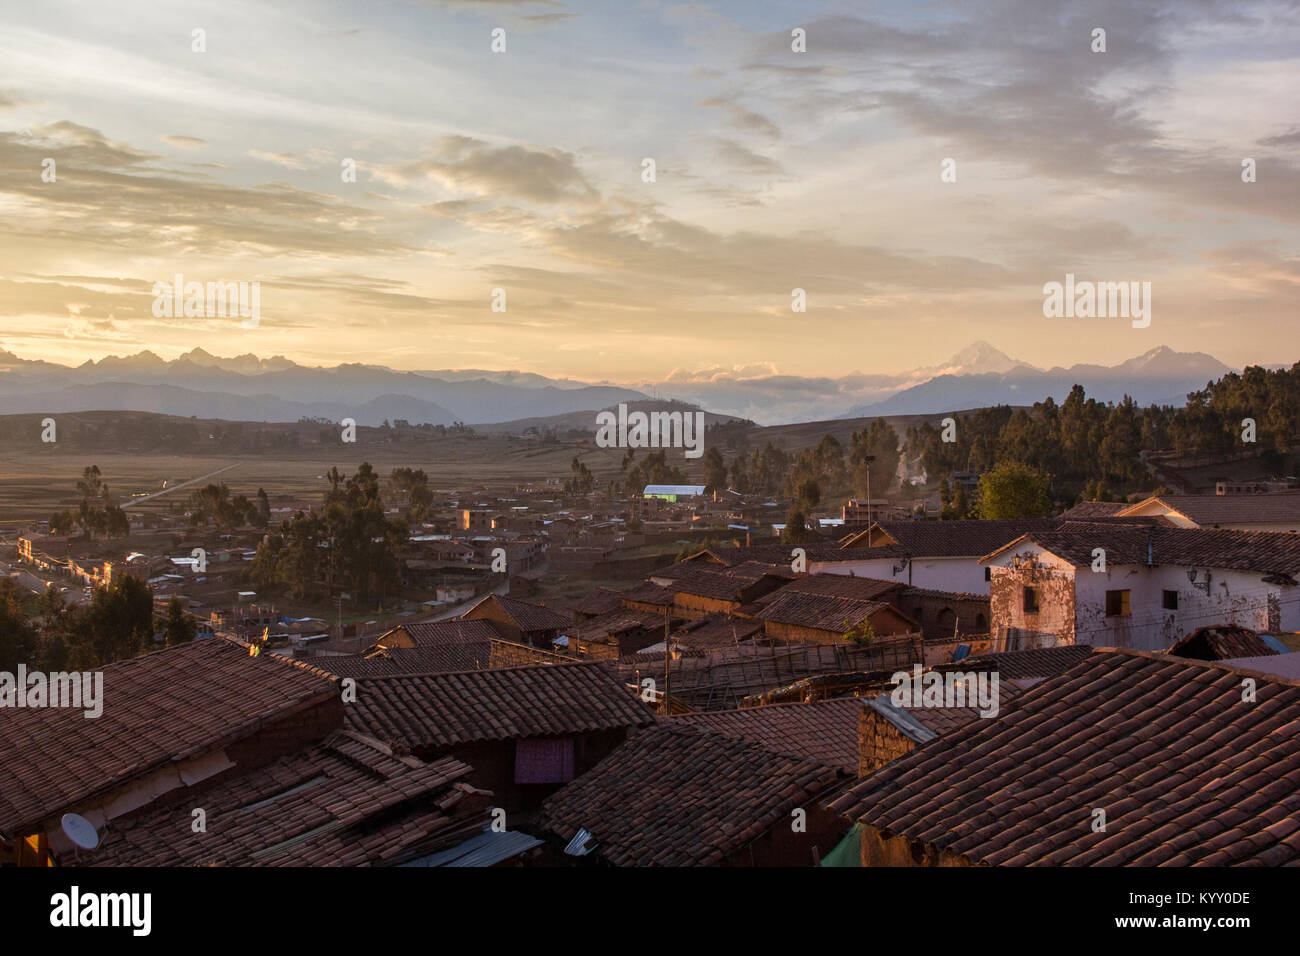 High angle view of houses against cloudy sky - Stock Image